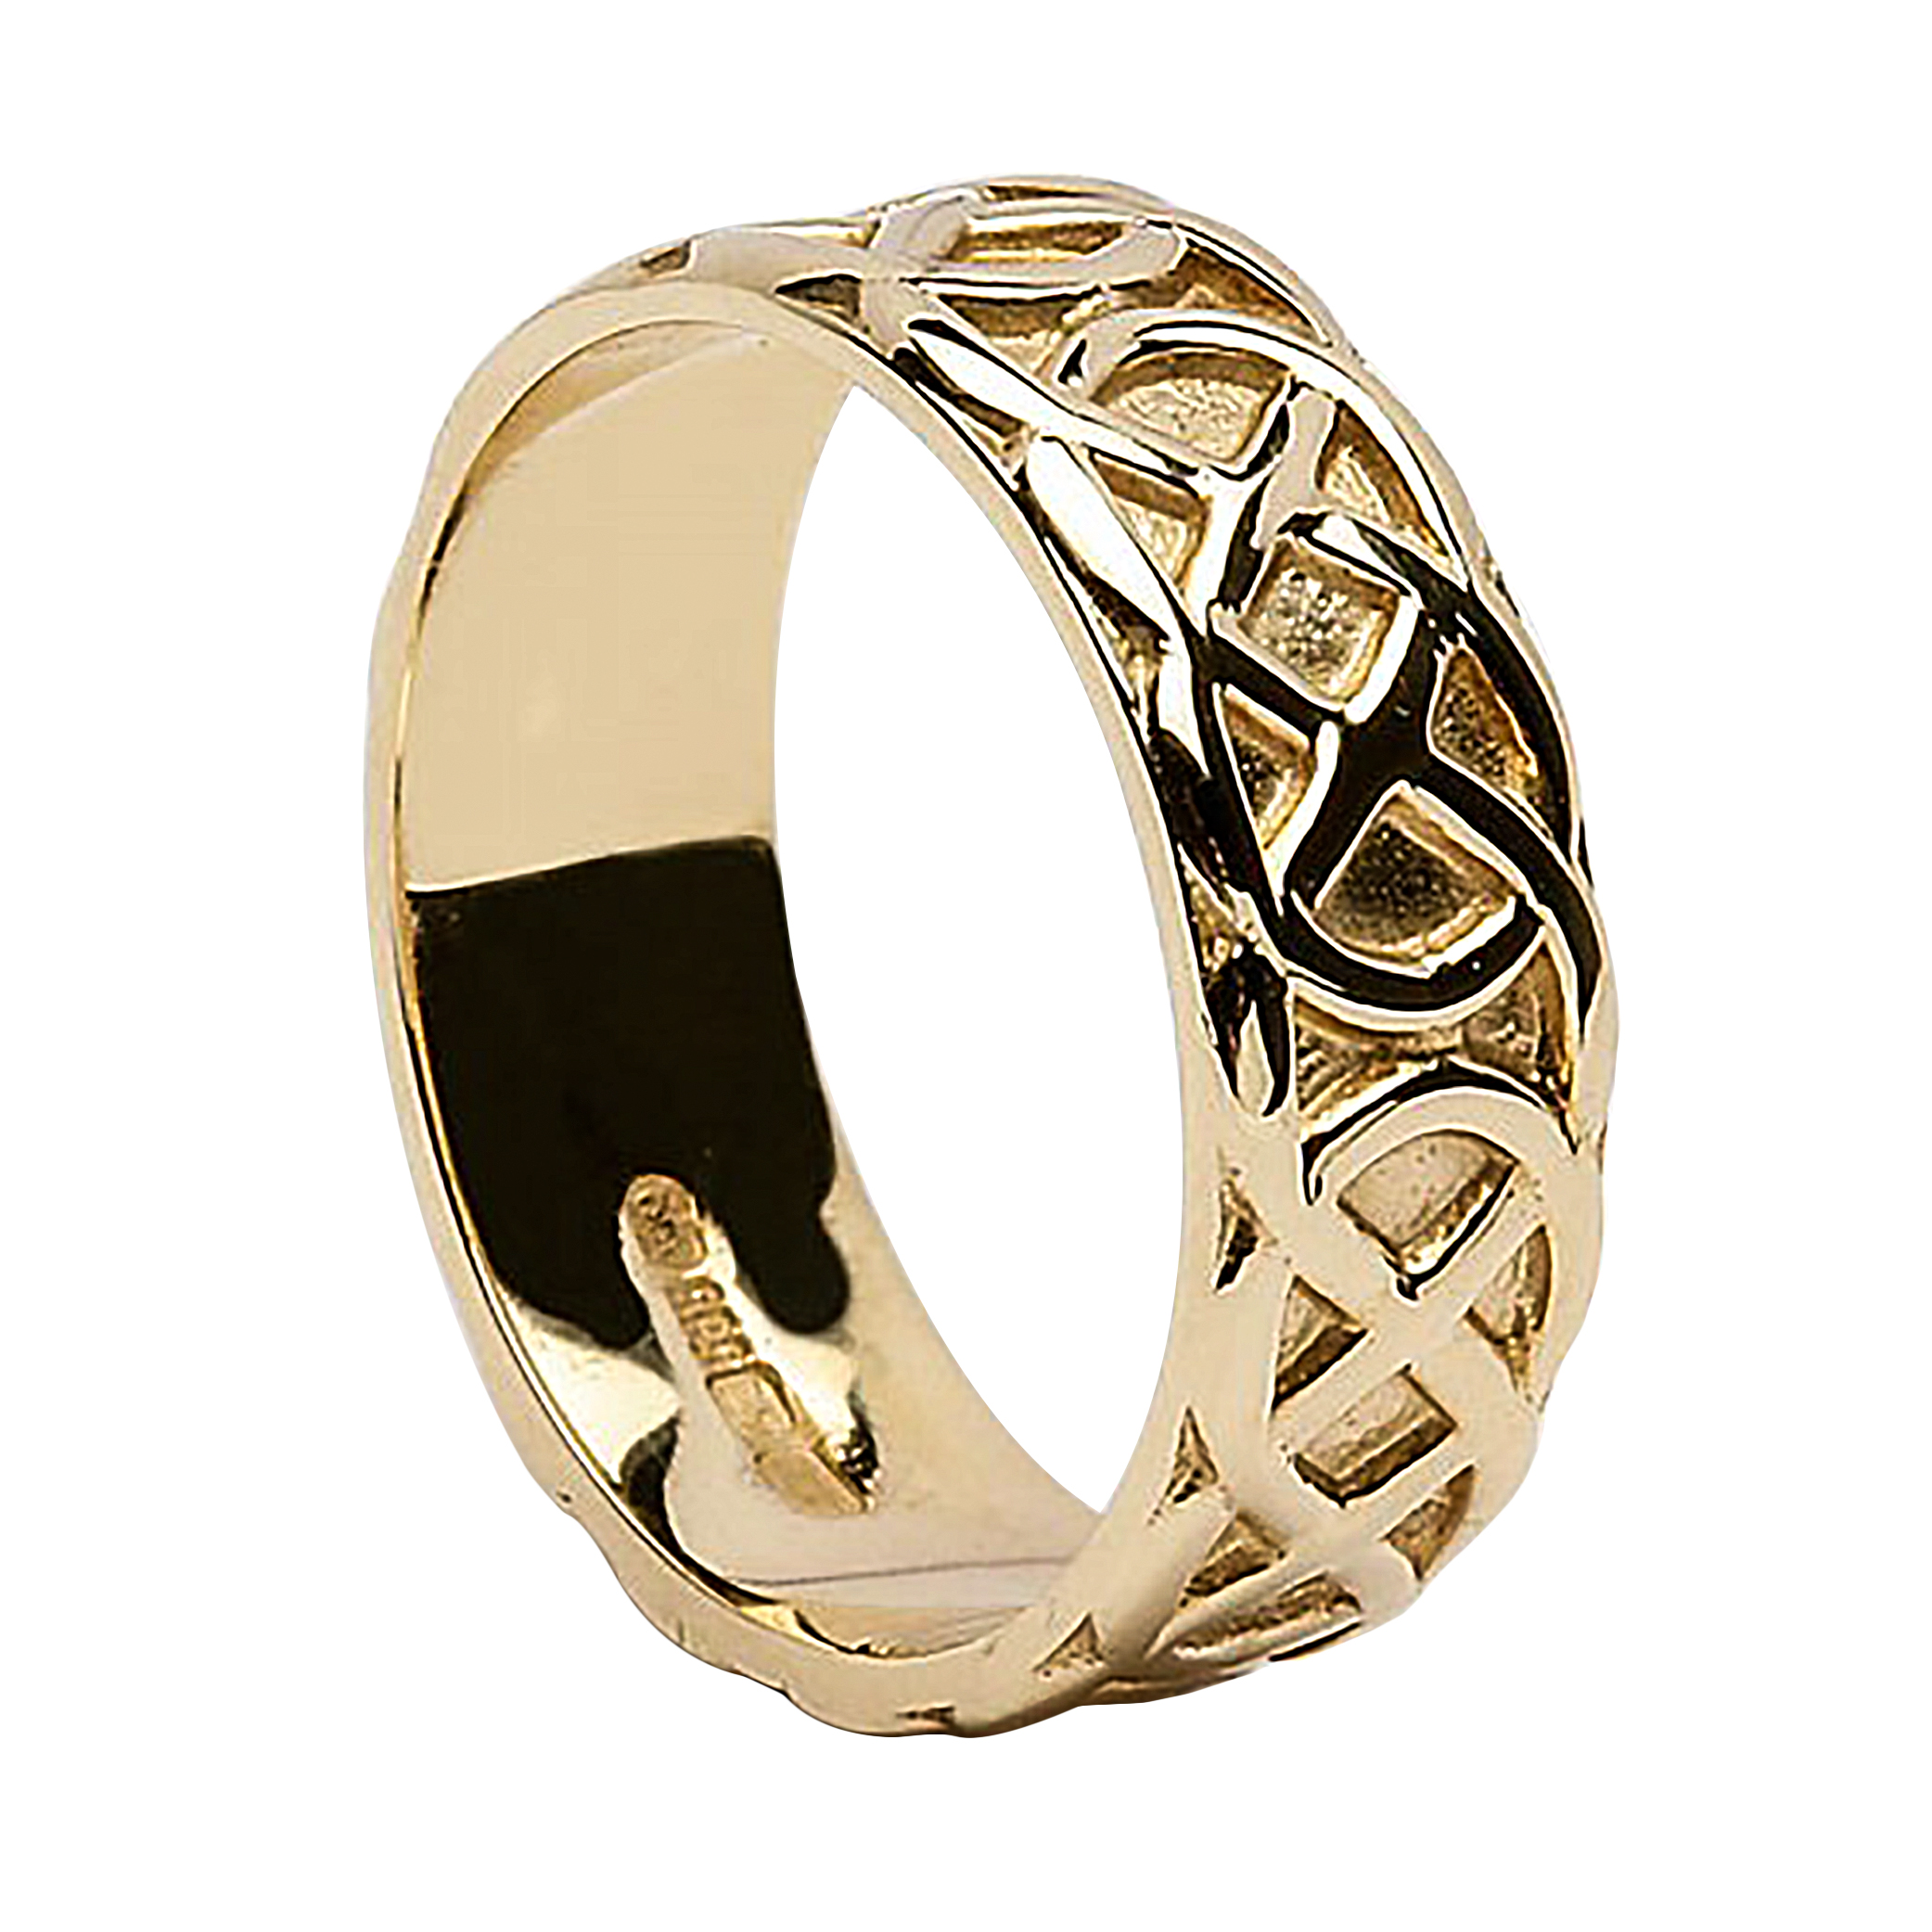 christie hgk rings christies b cartier s online trinity zero two and jewels bulgari